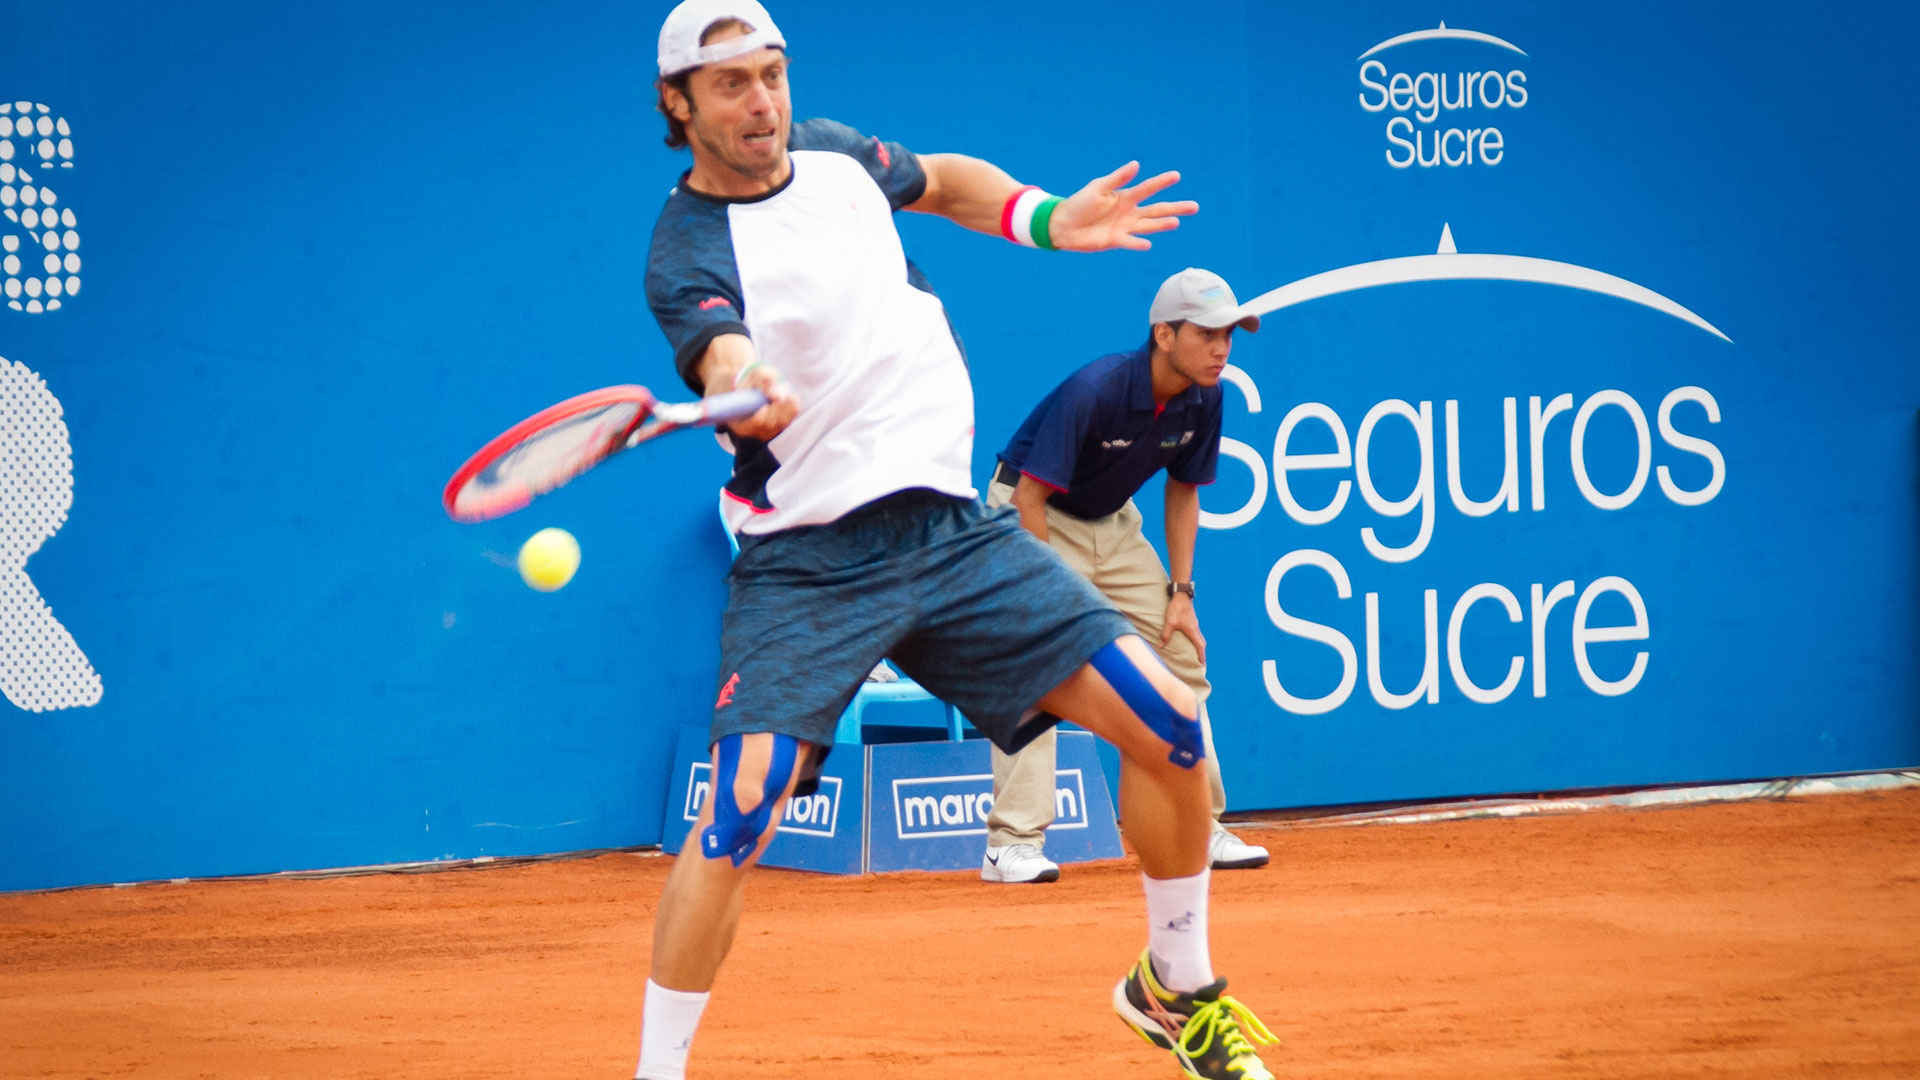 Lorenzi hits a forehand in Quito